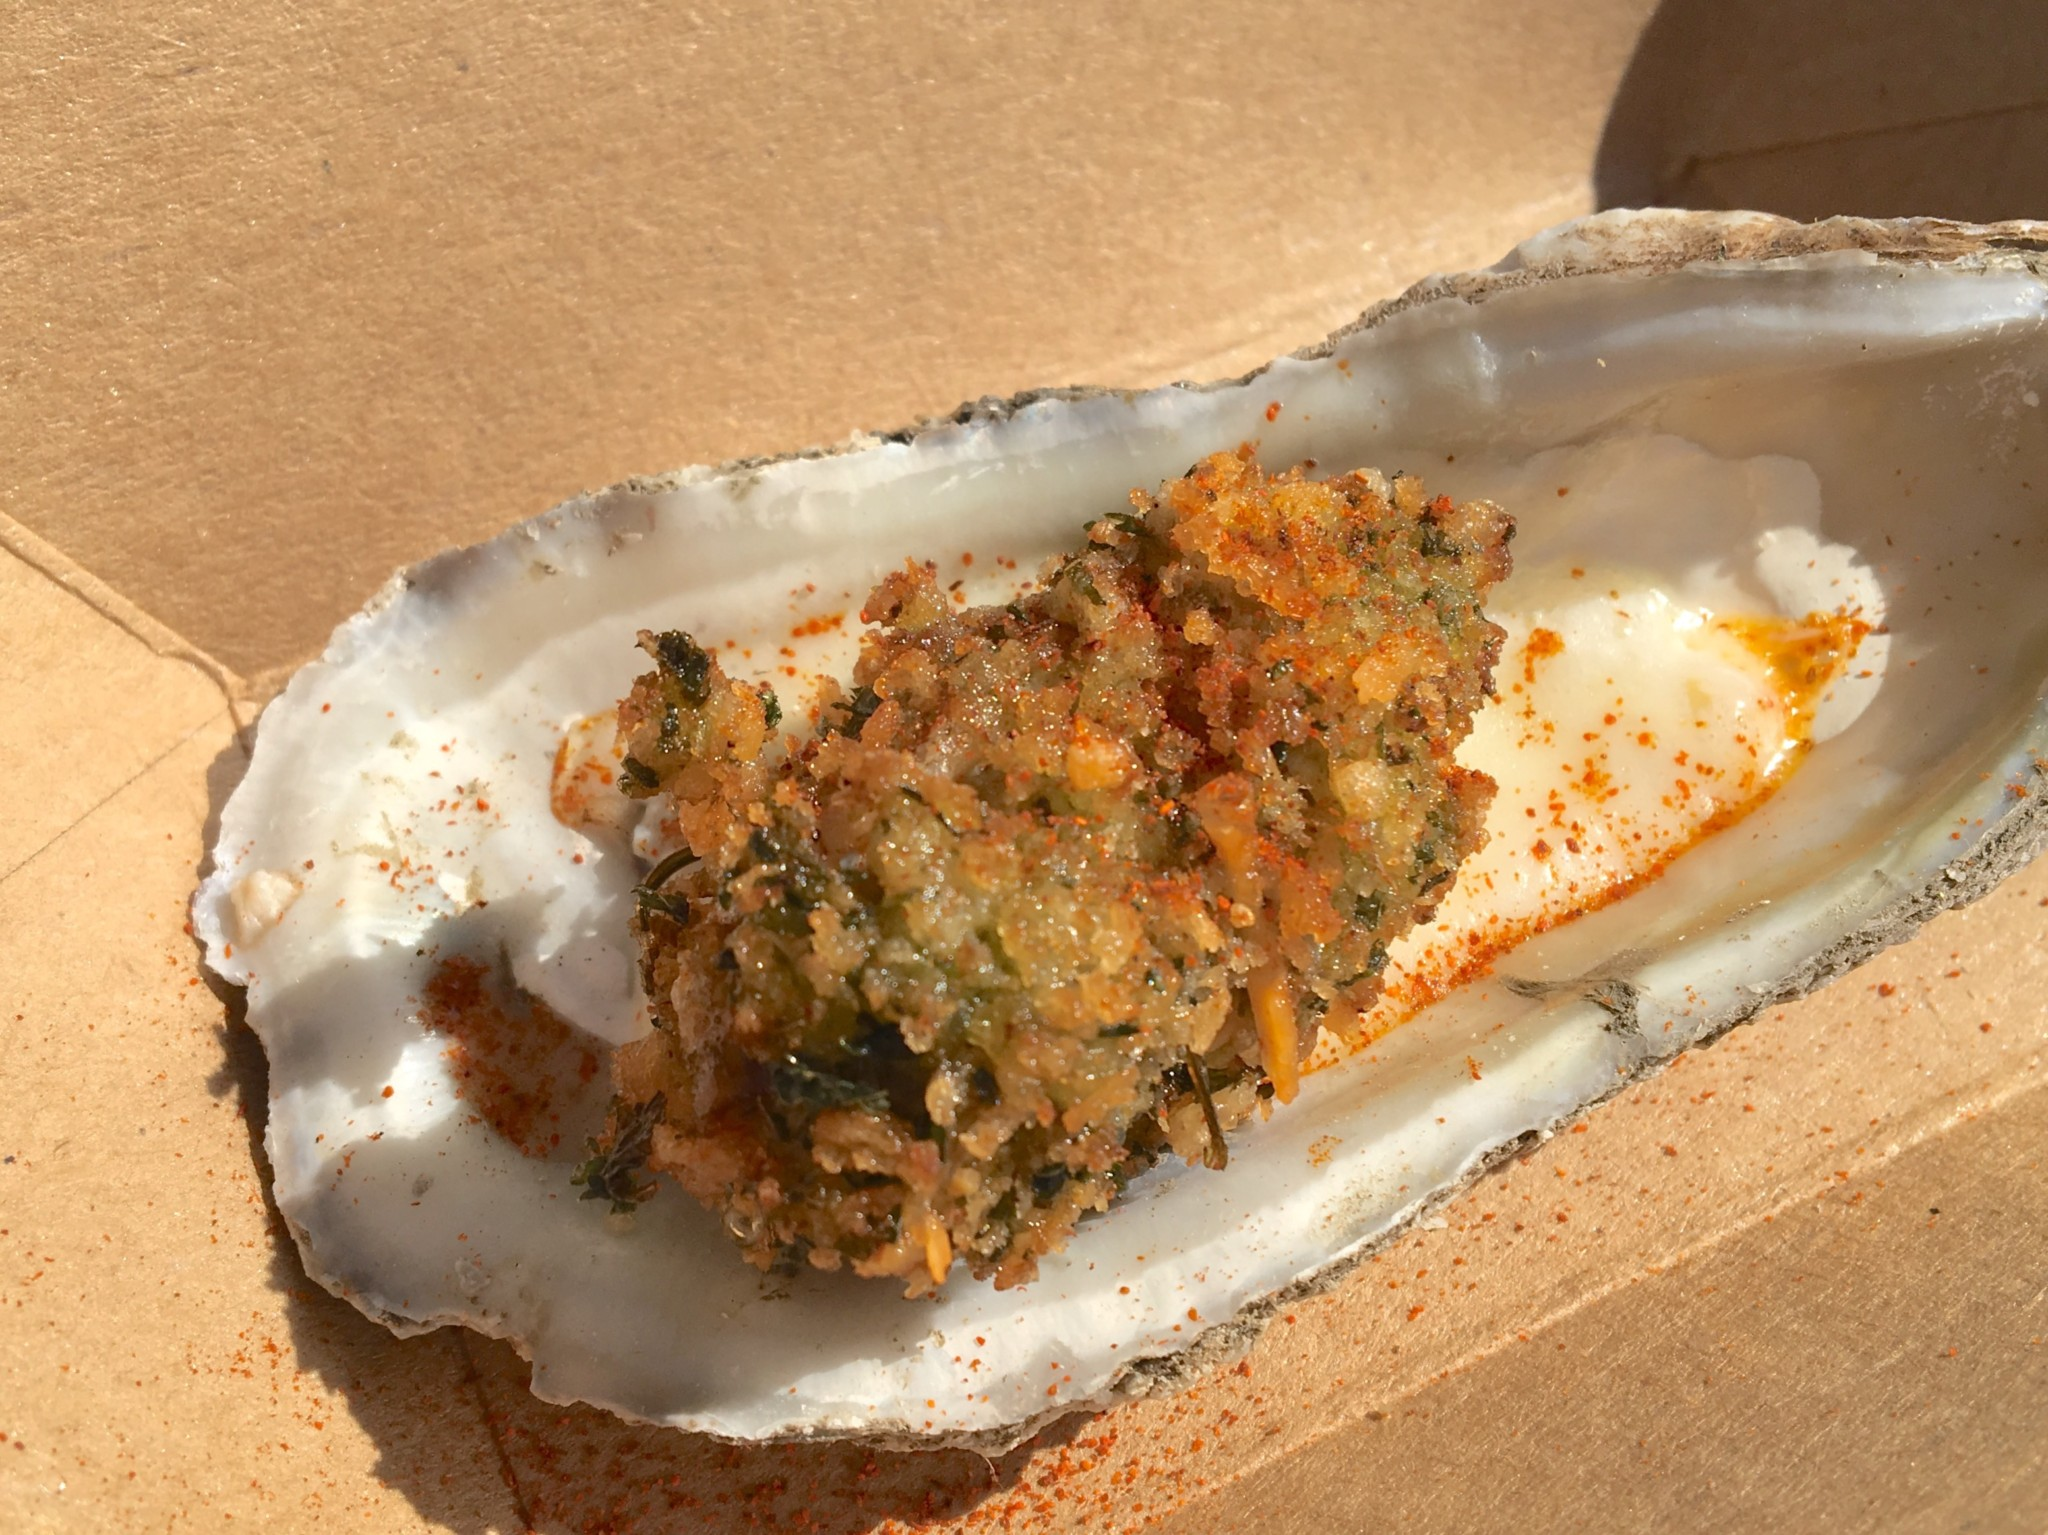 The Mississippi Seafood team won Chef's Choice and the Rockefeller category.